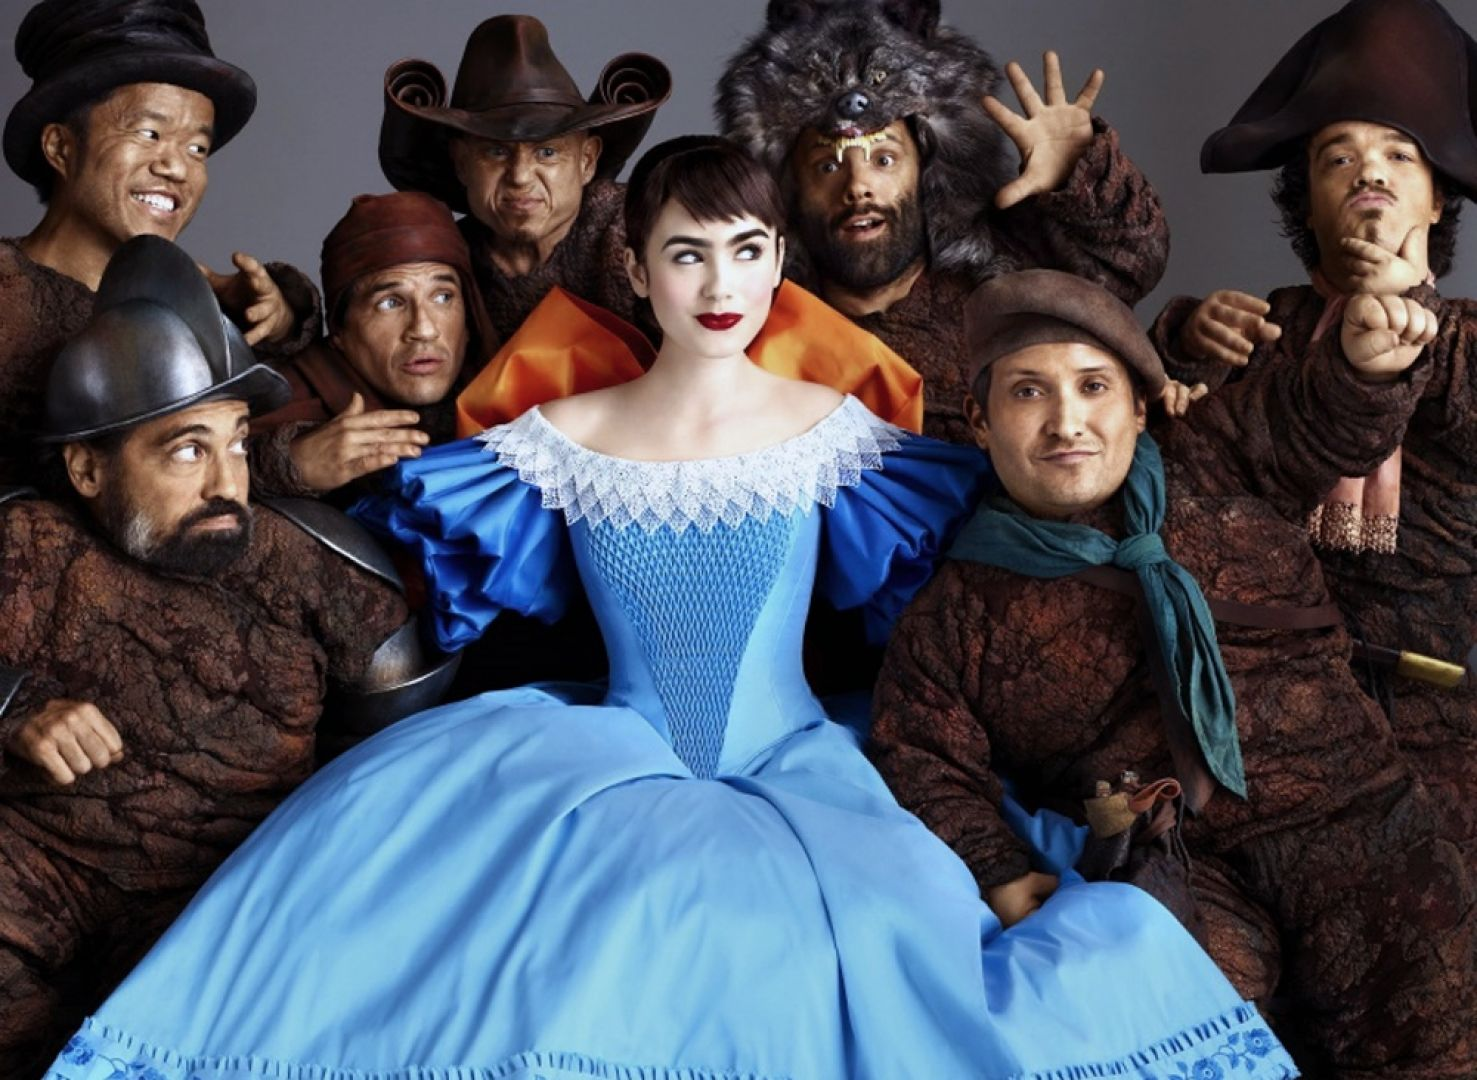 Snow White and the Seven Dwarfs is a 1937 American animated musical fantasy film produced by Walt Disney Productions and originally released by RKO Radio Pictures